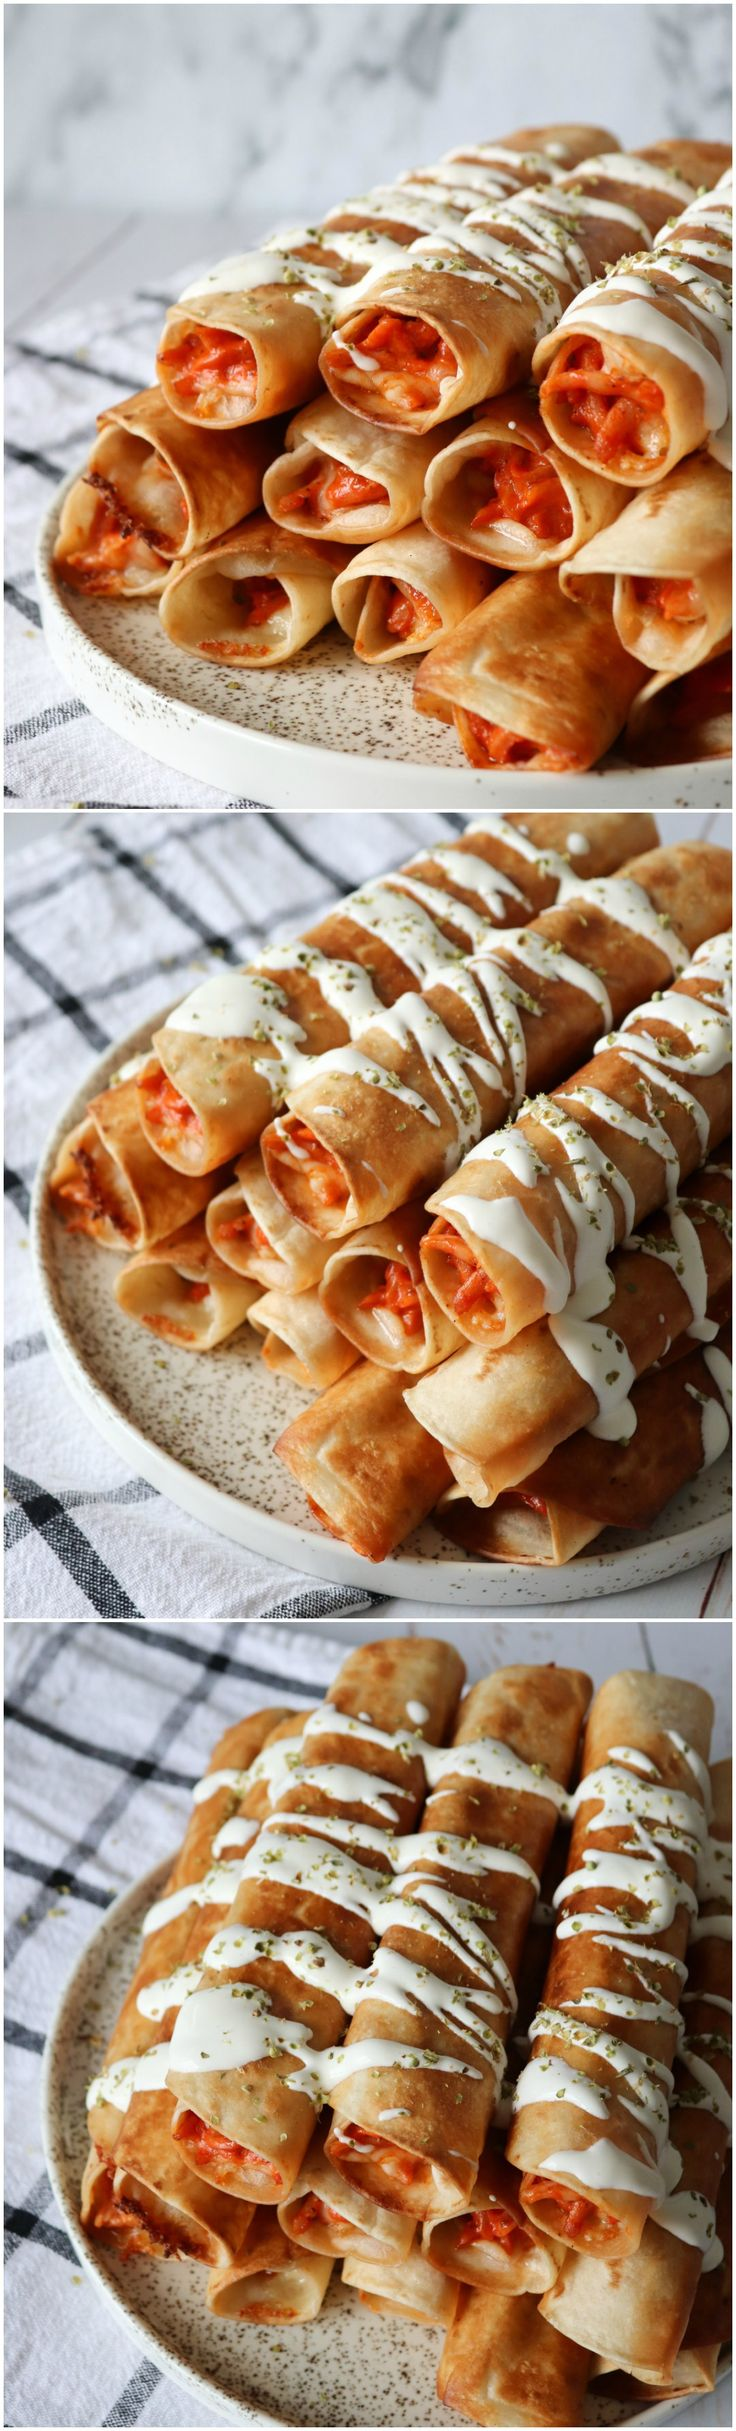 Delicious pizza taquitos! They are so crispy and filled with a yummy ham pizza filling! A true party snack or dinner treat!